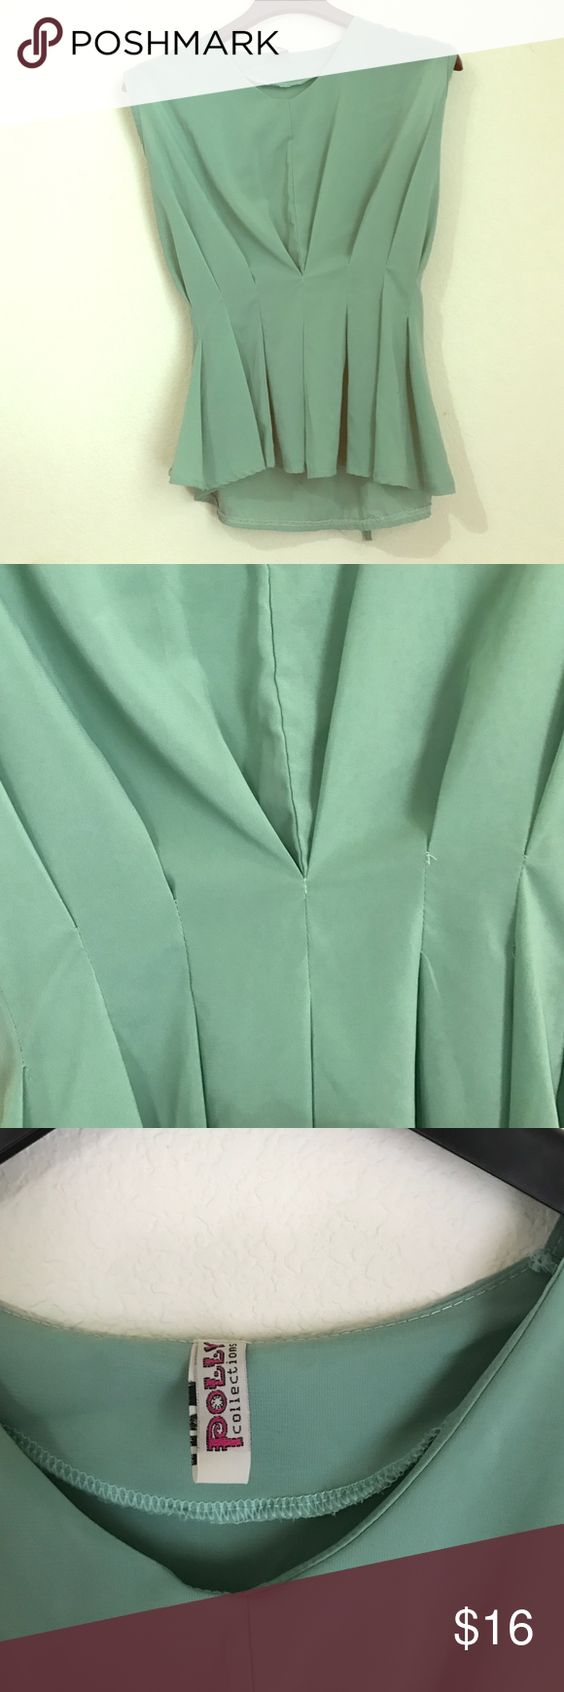 Green Blouse Green sleeveless blouse tie in the back. Size M. polly collection Tops Blouses